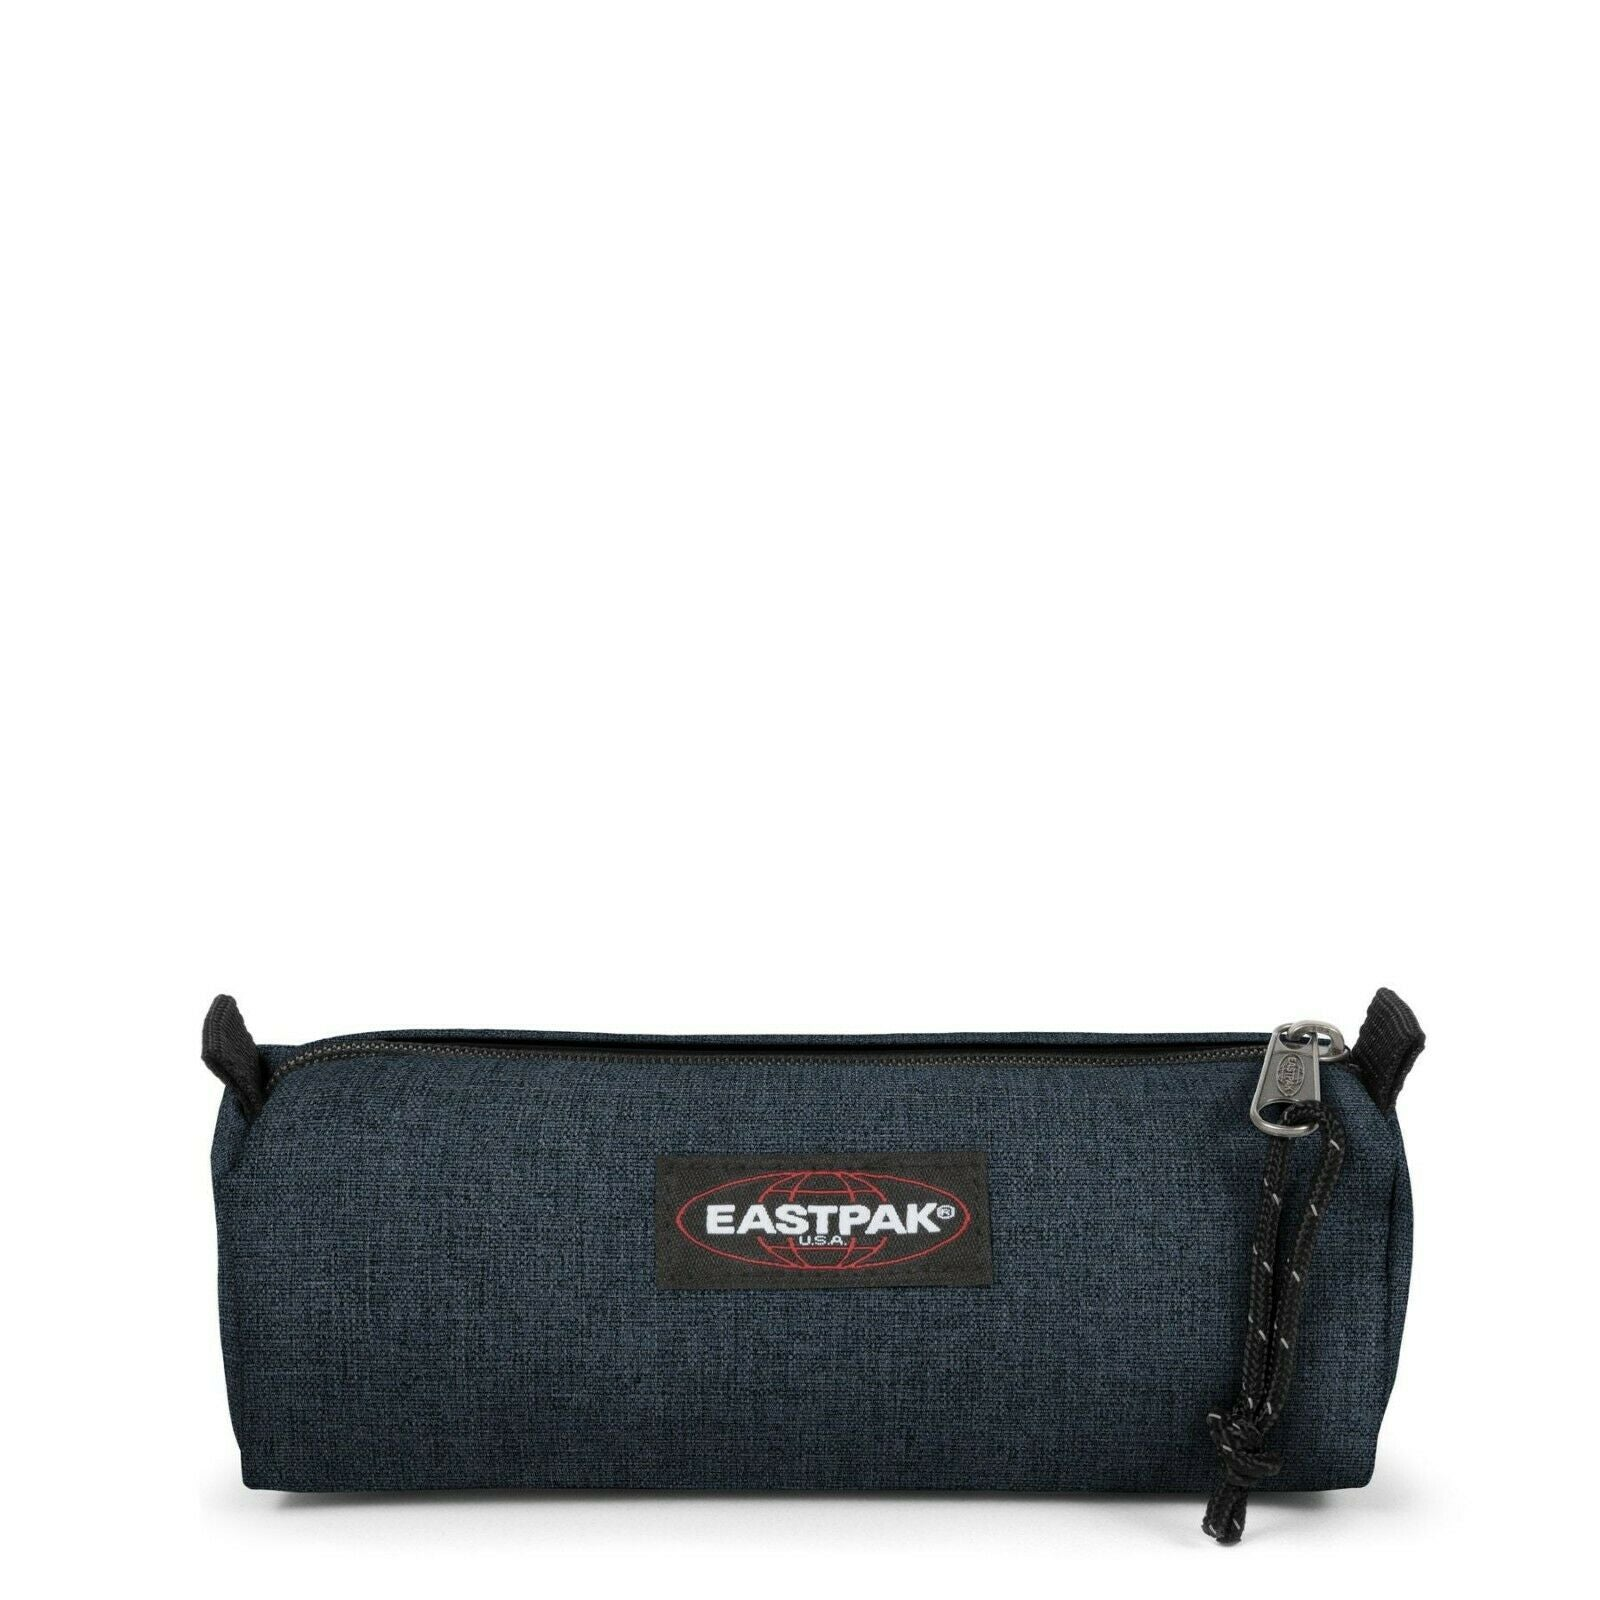 Eastpak Pouch Benchmark - Valley Sports UK